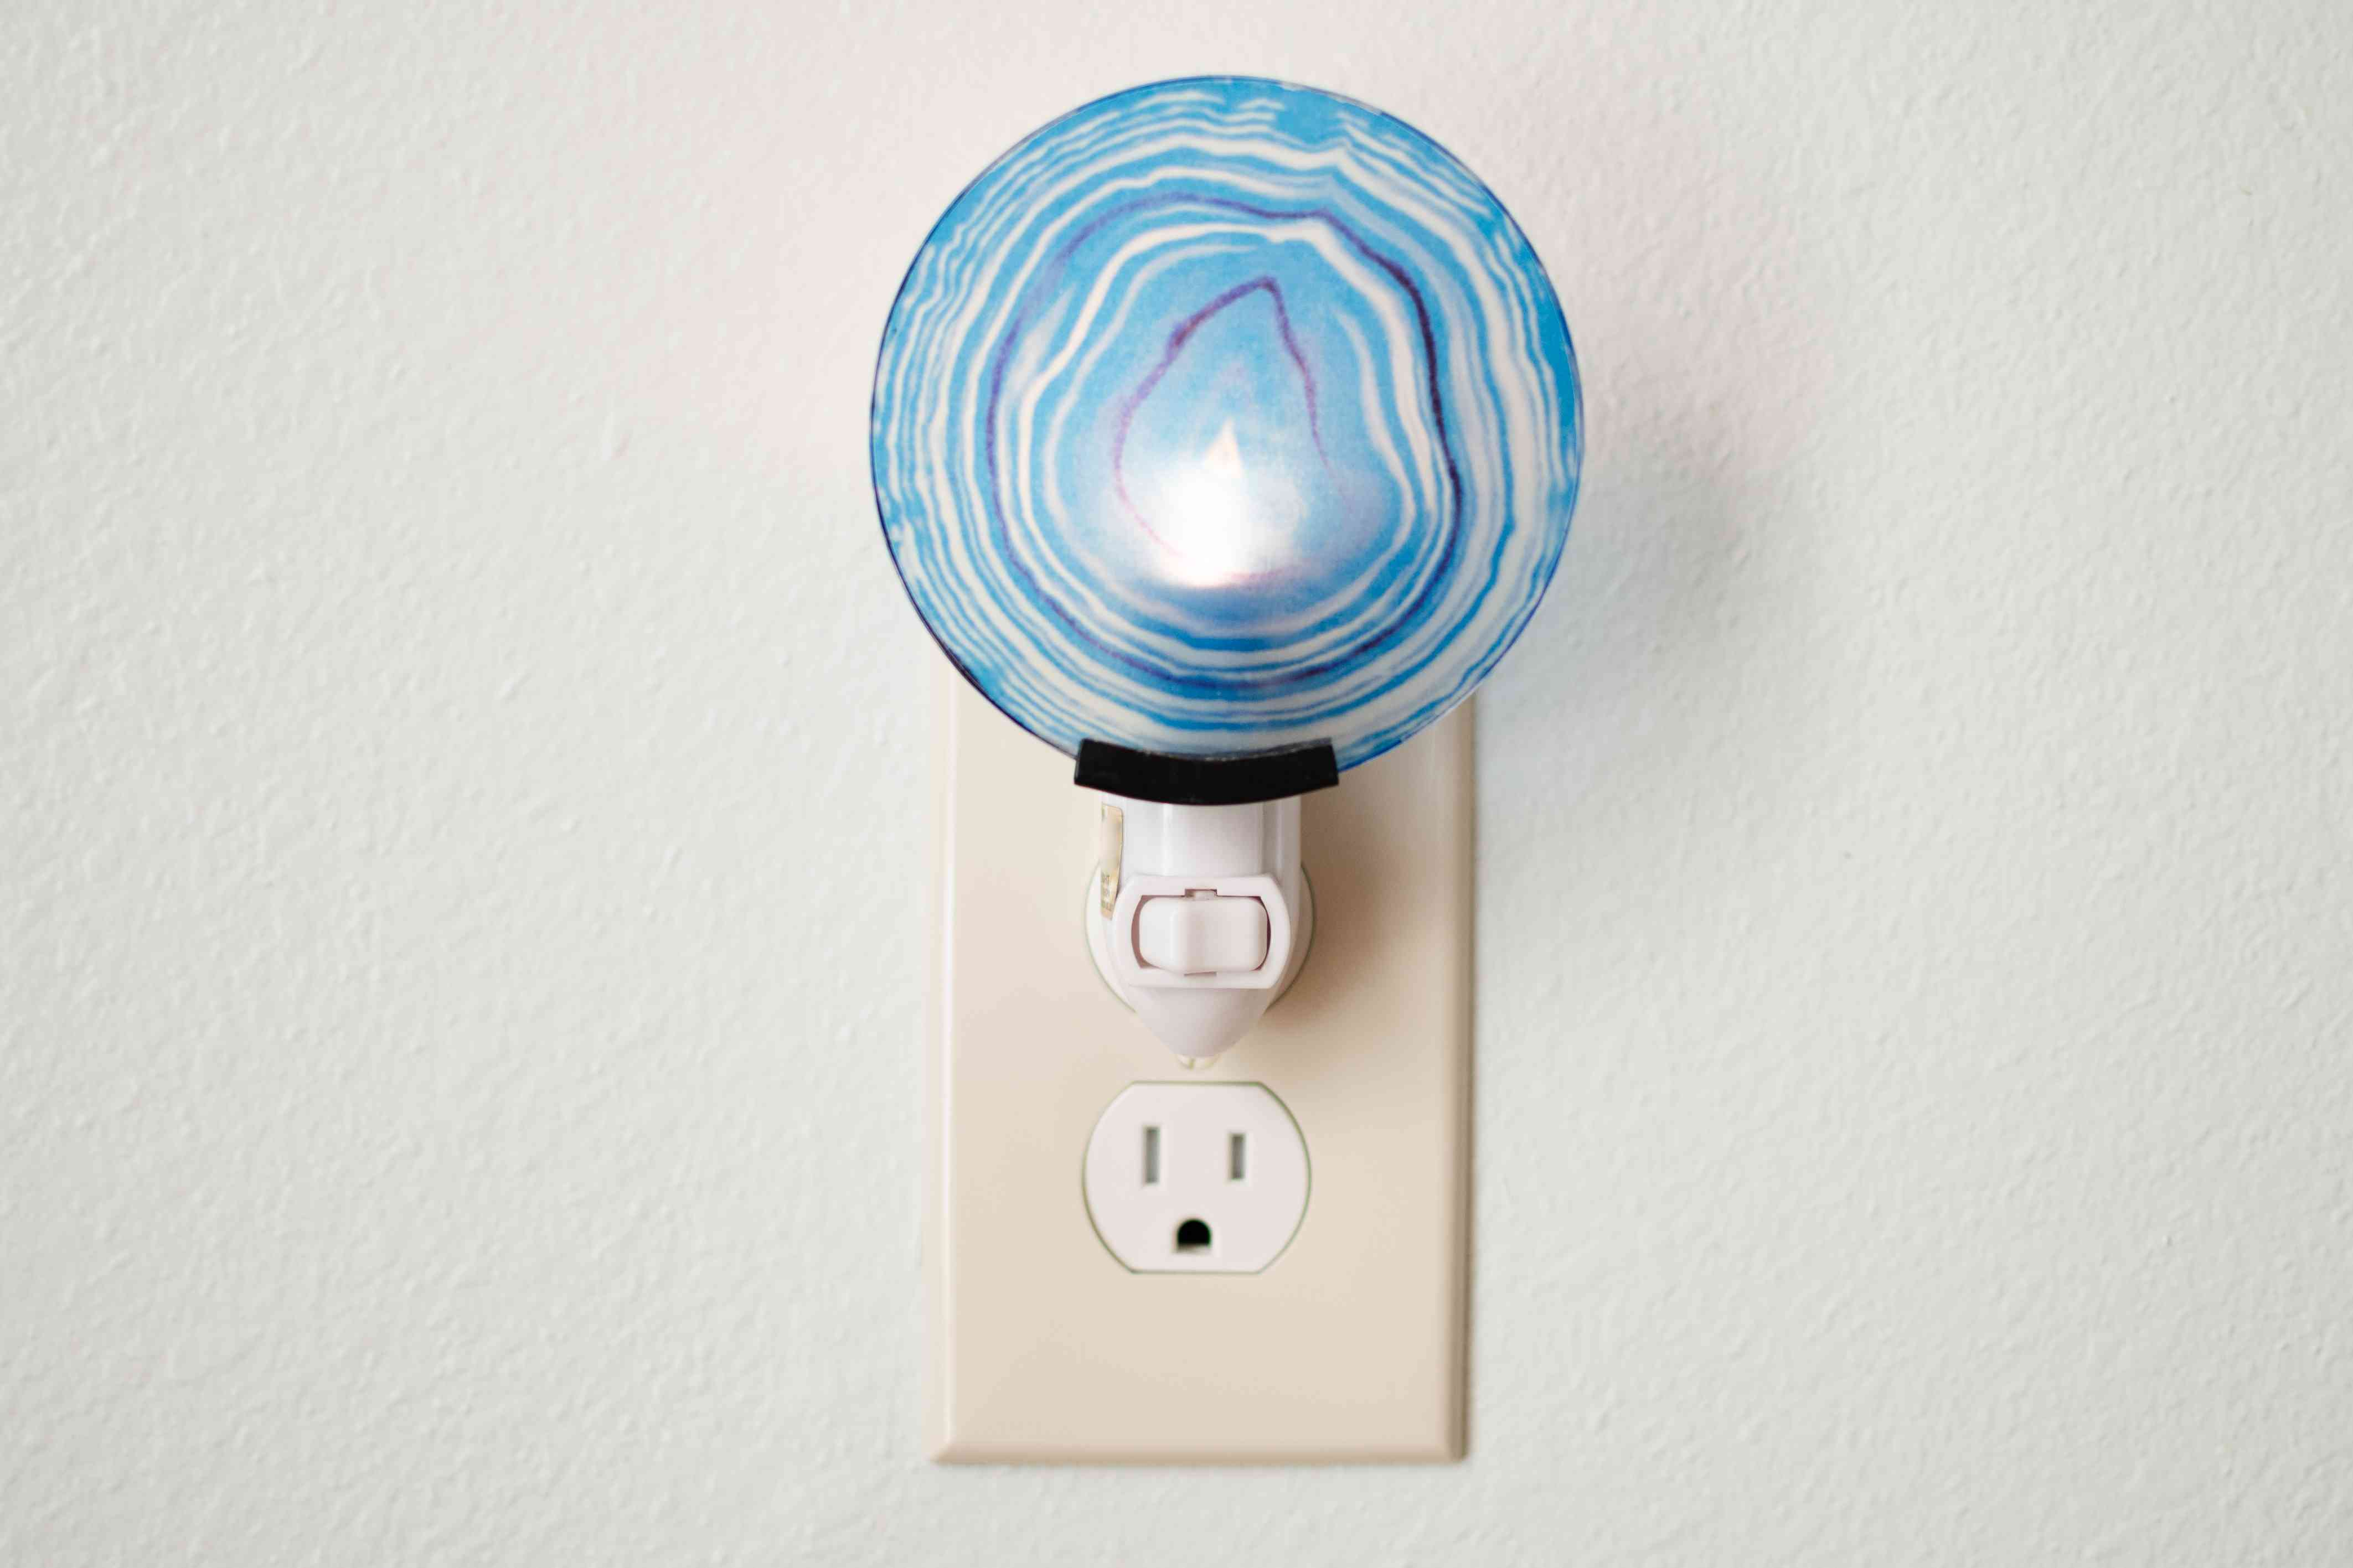 Blue circular plug-in light connected to electrical outlet